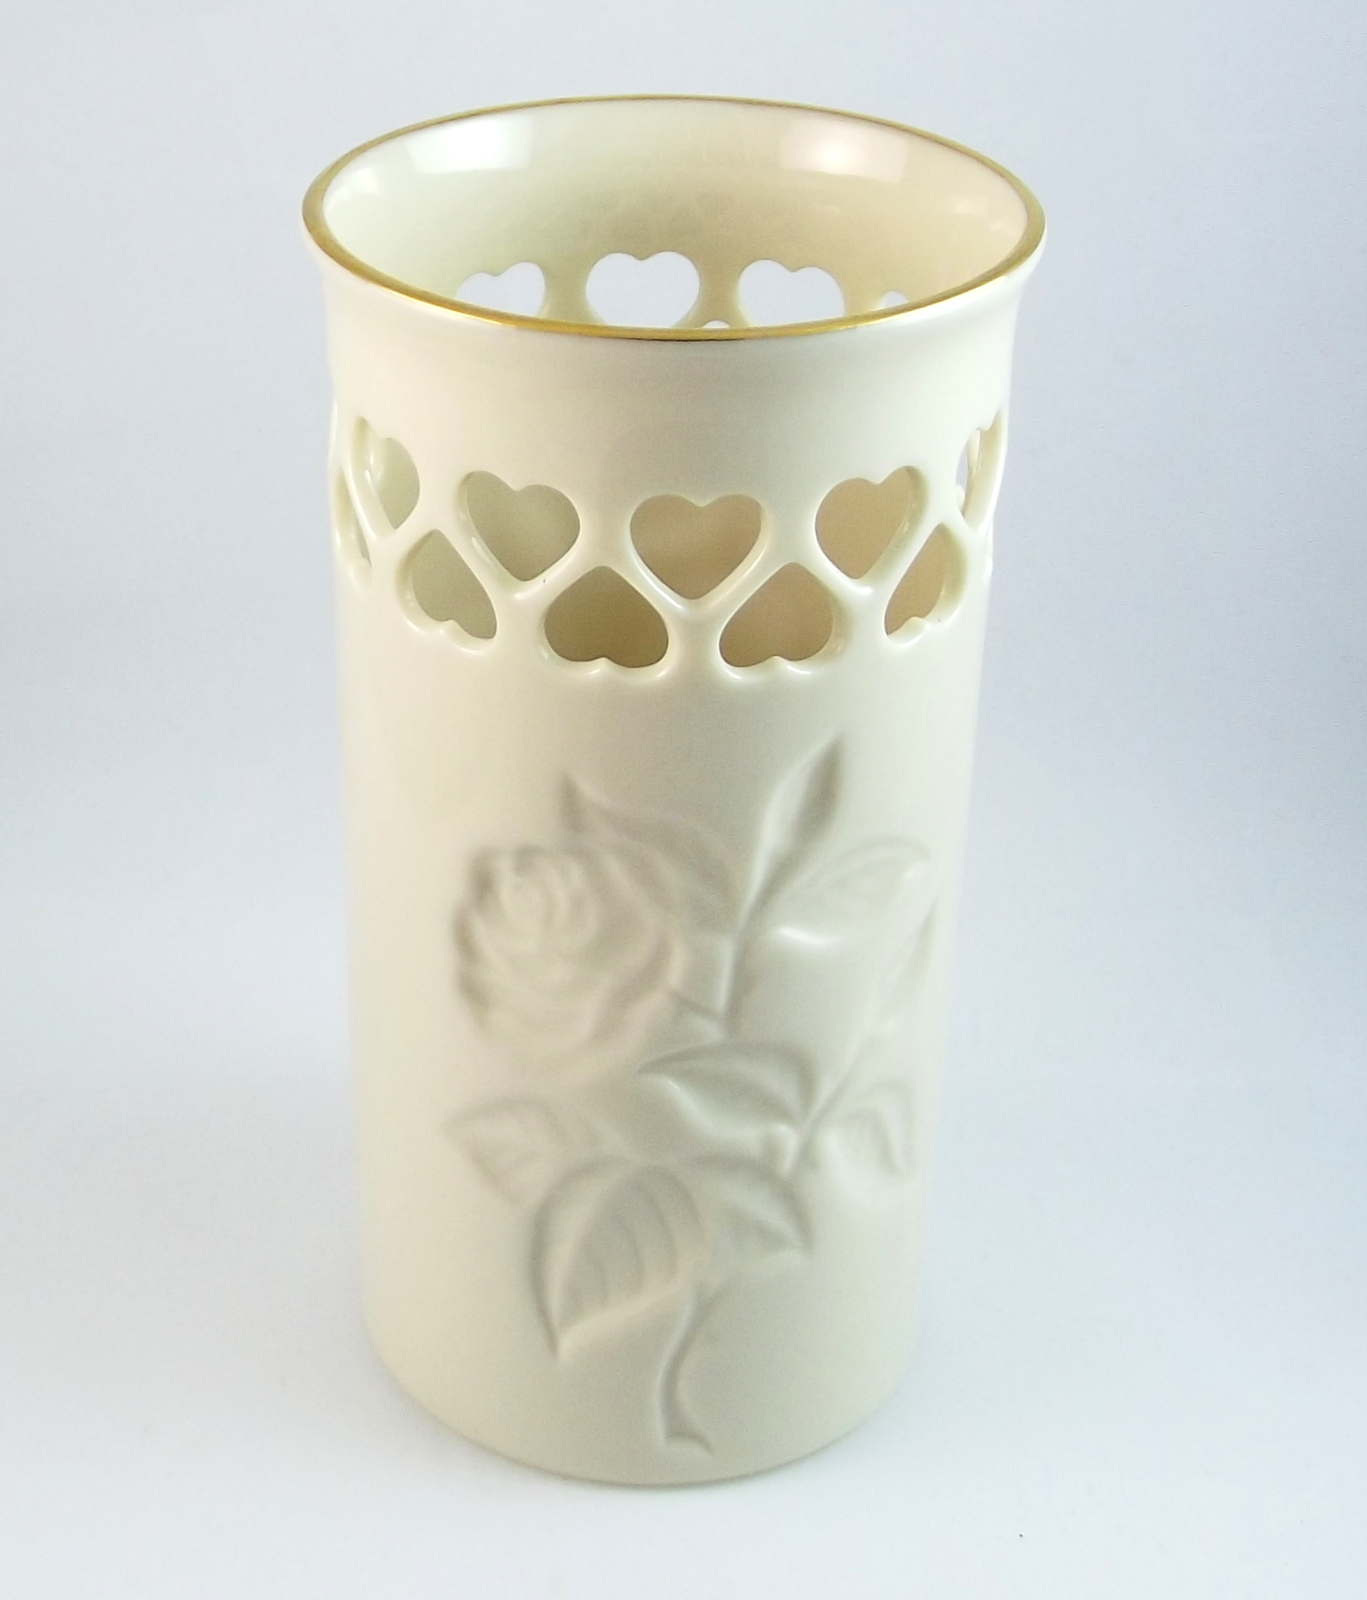 Lenox pierced heart vase hand painted gold trim USA embossed intaglio rose